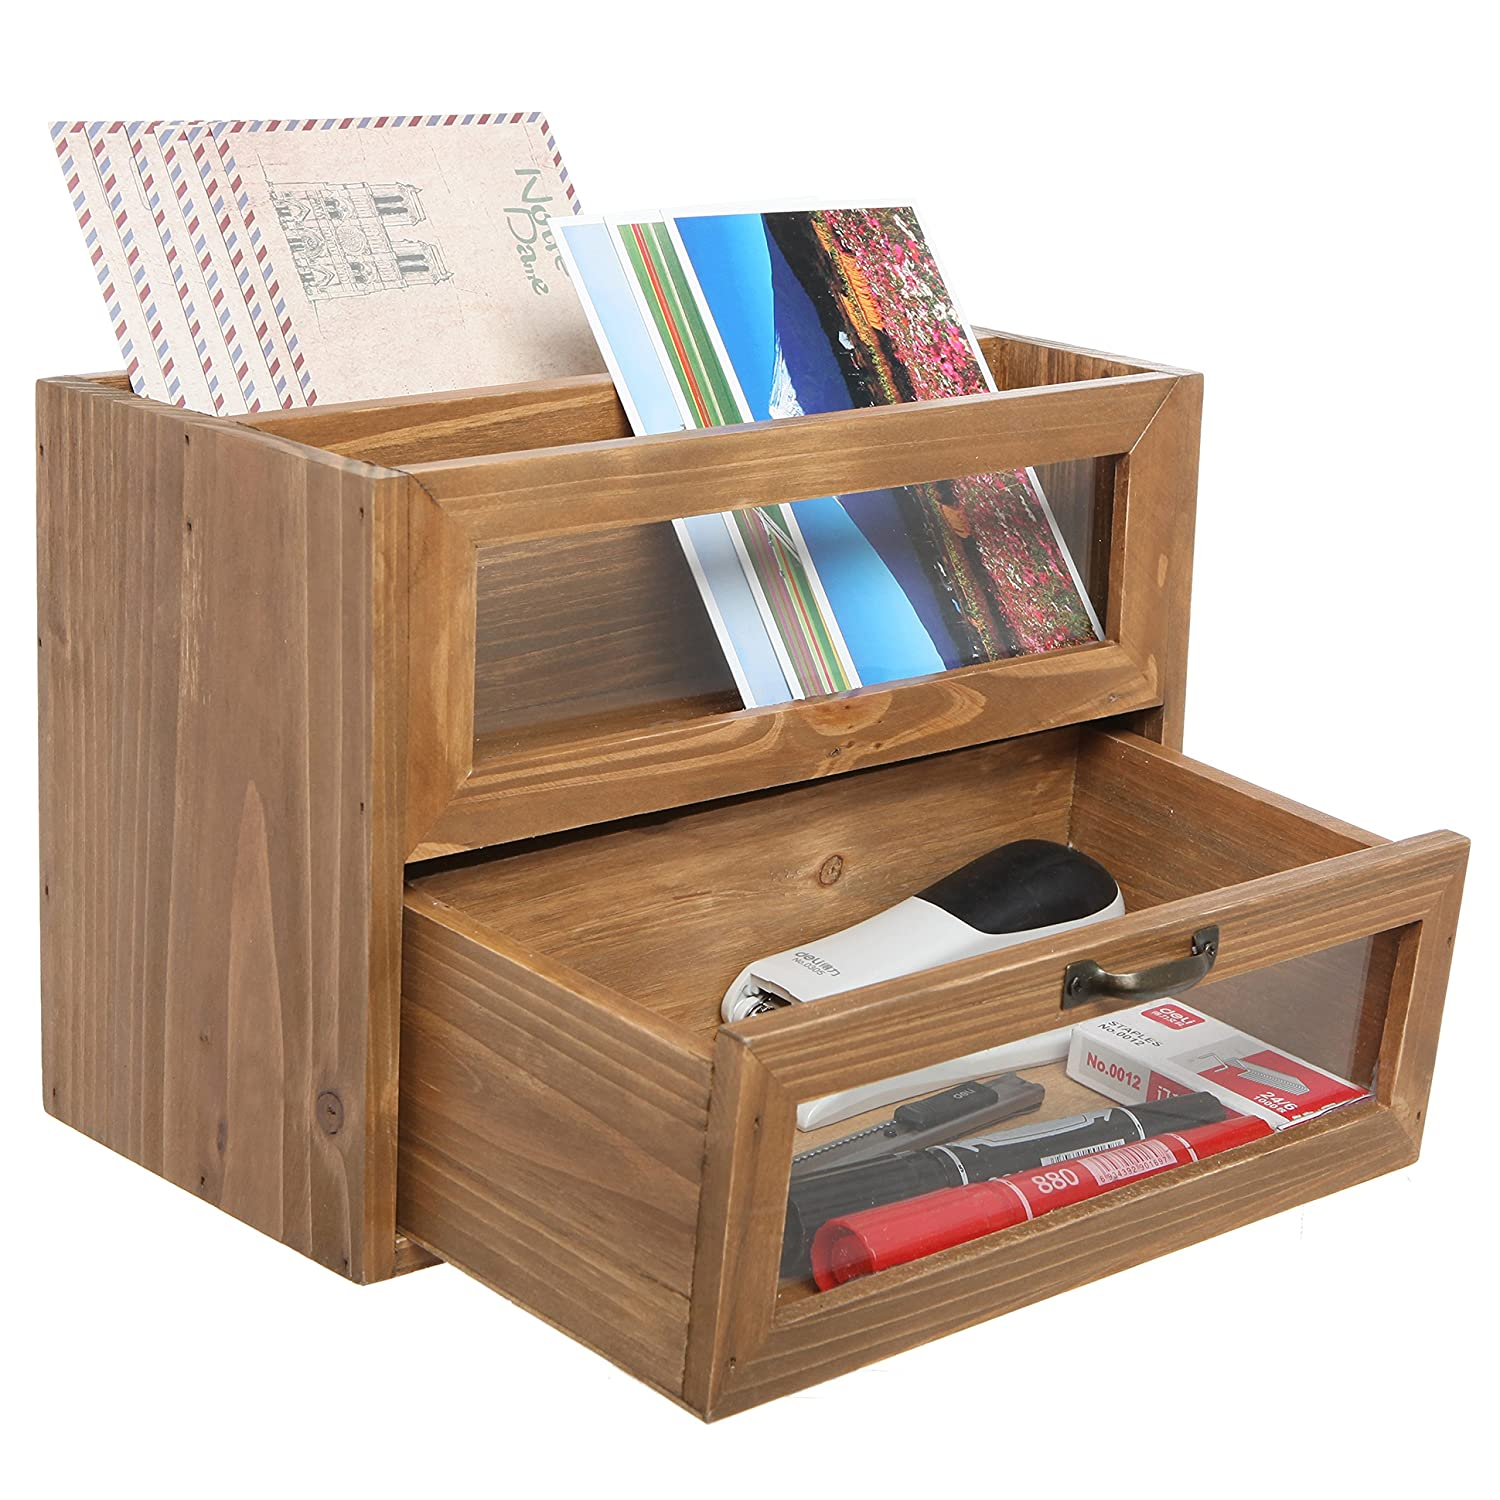 Amazon.com : Natural Unfinished Wood Mini Office Supply Storage Cabinet /  File Letter Desktop Organizer   MyGift Home : Office Products